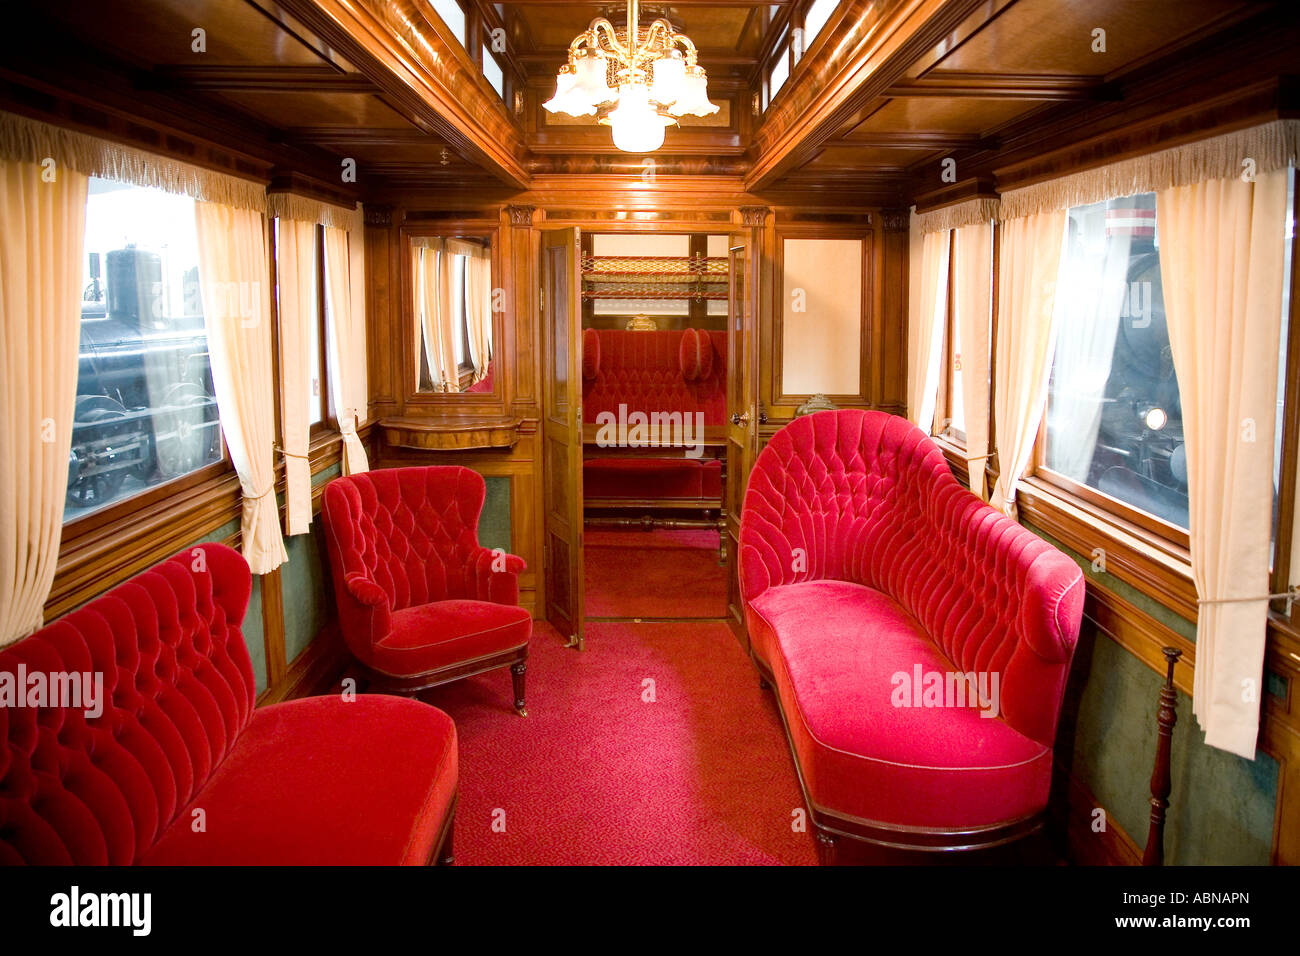 Very Old First Class Train Carriages Stock Photo